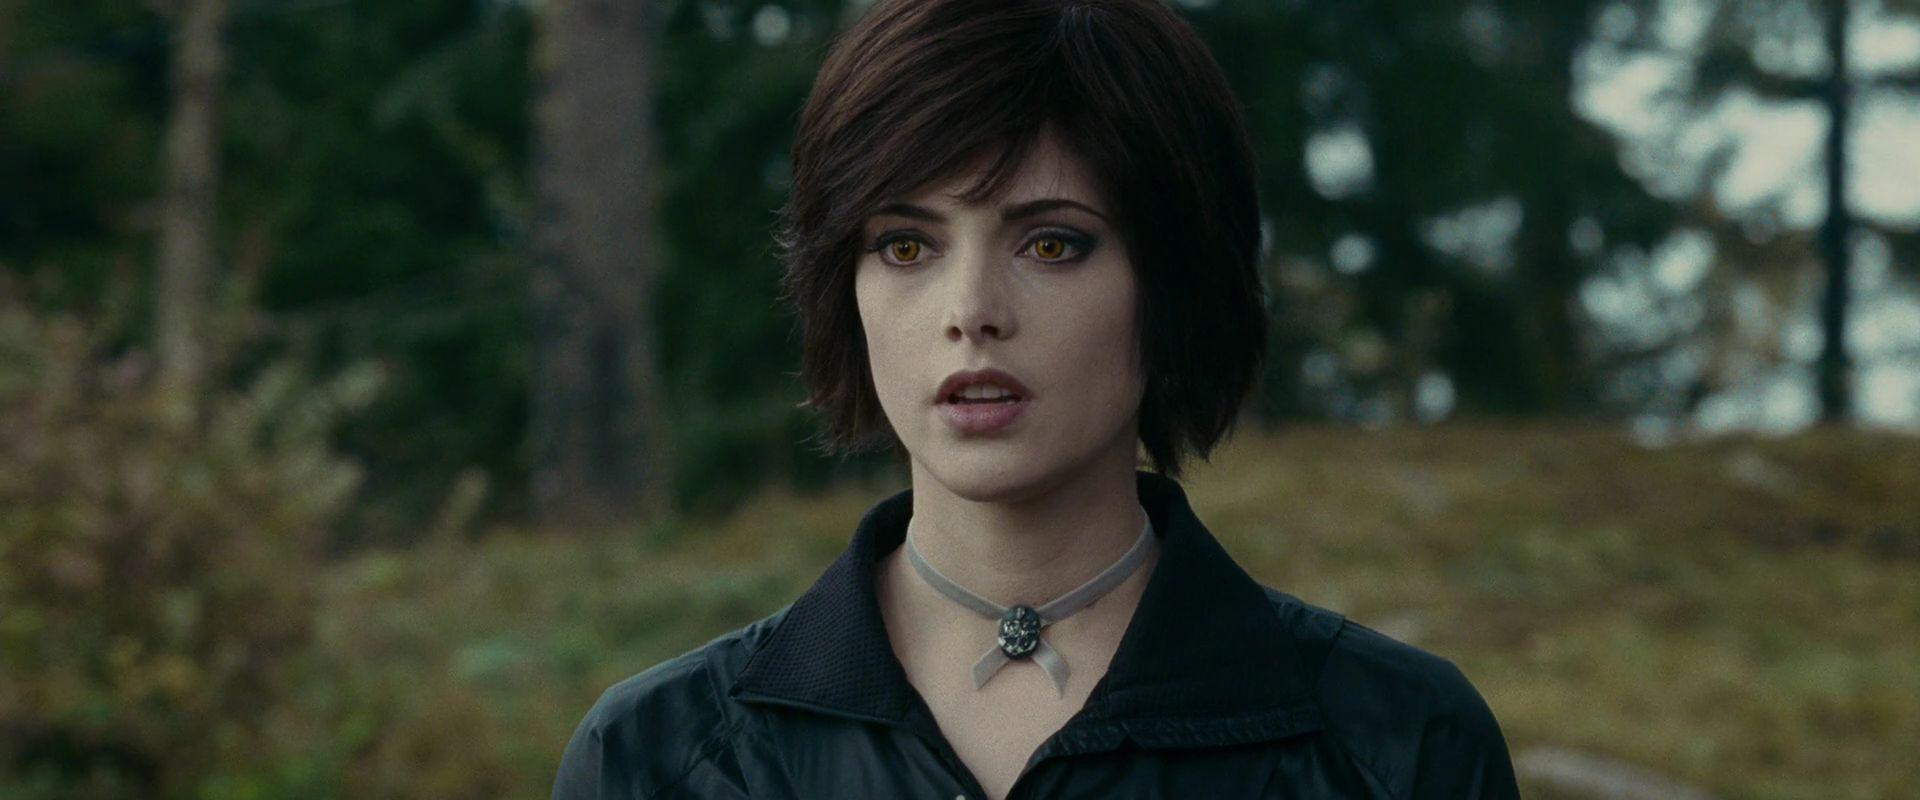 Twilight Characters Alice Which Twilight Character Are